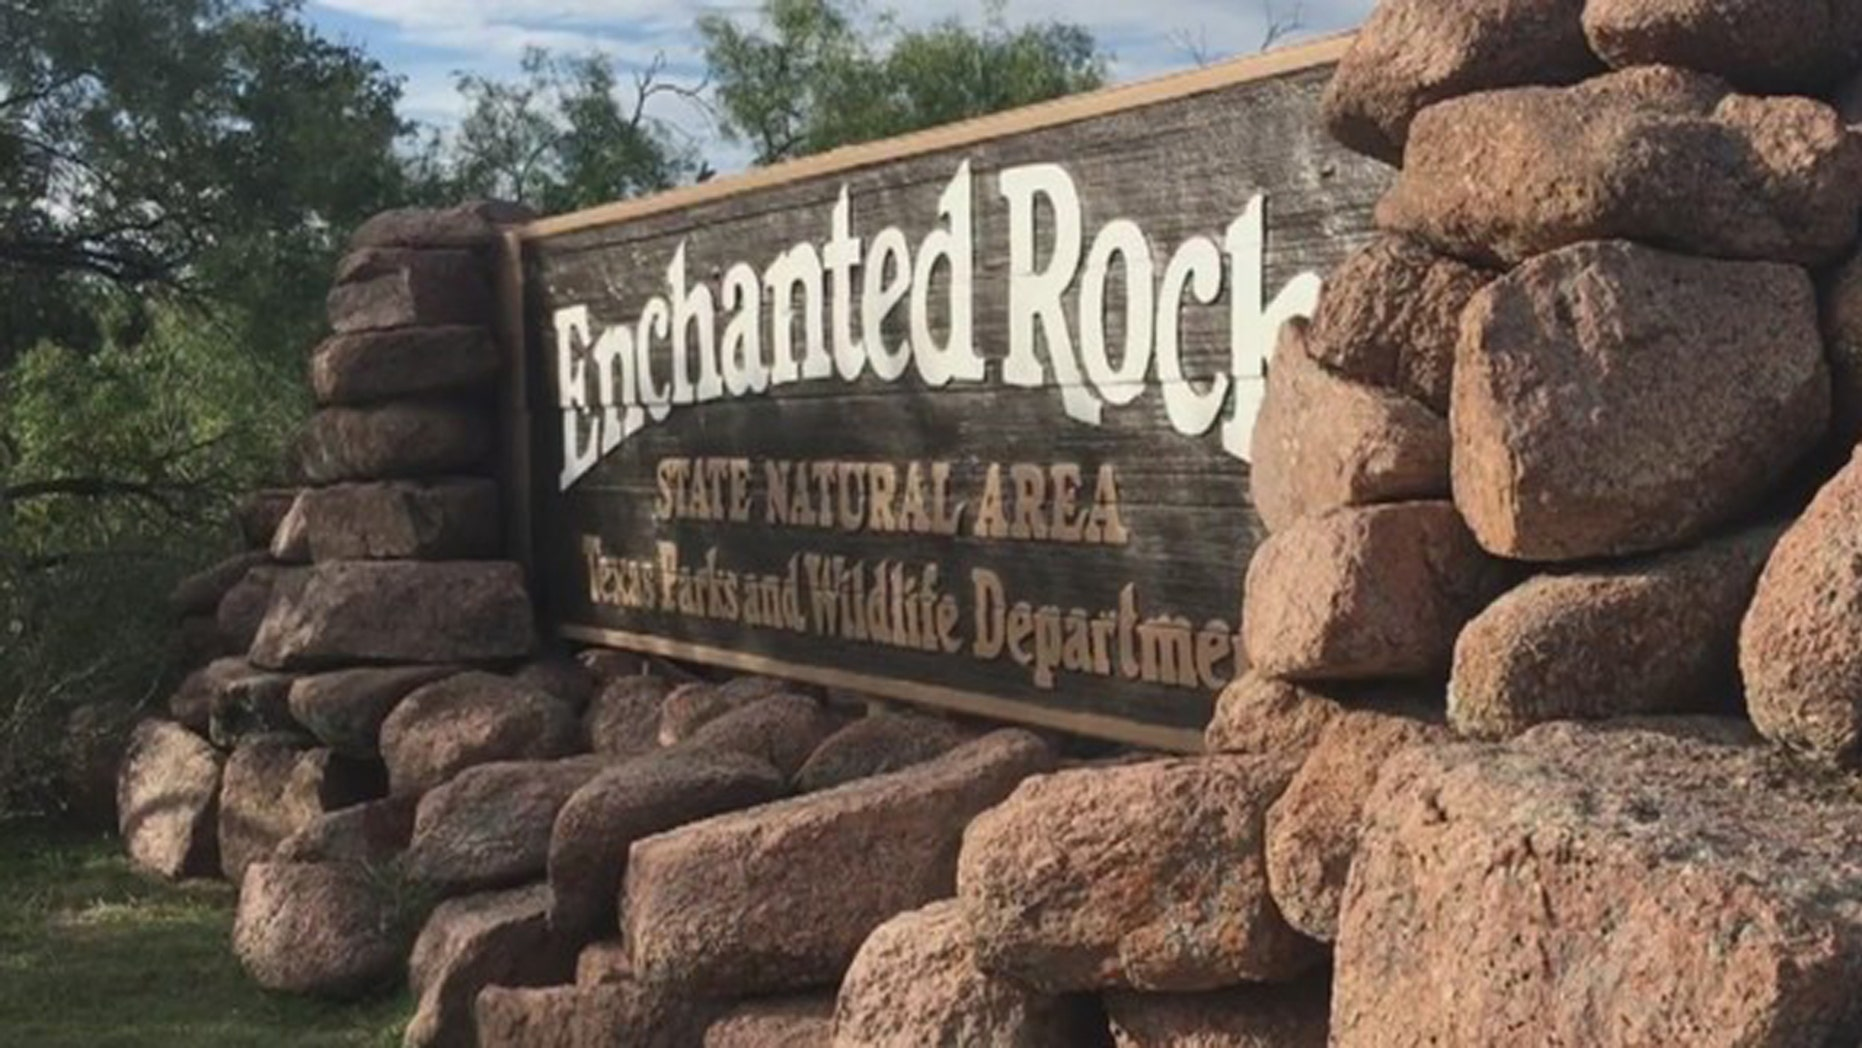 A woman claims a stone she took from Enchanted Rock Park in Texas is giving her bad luck.